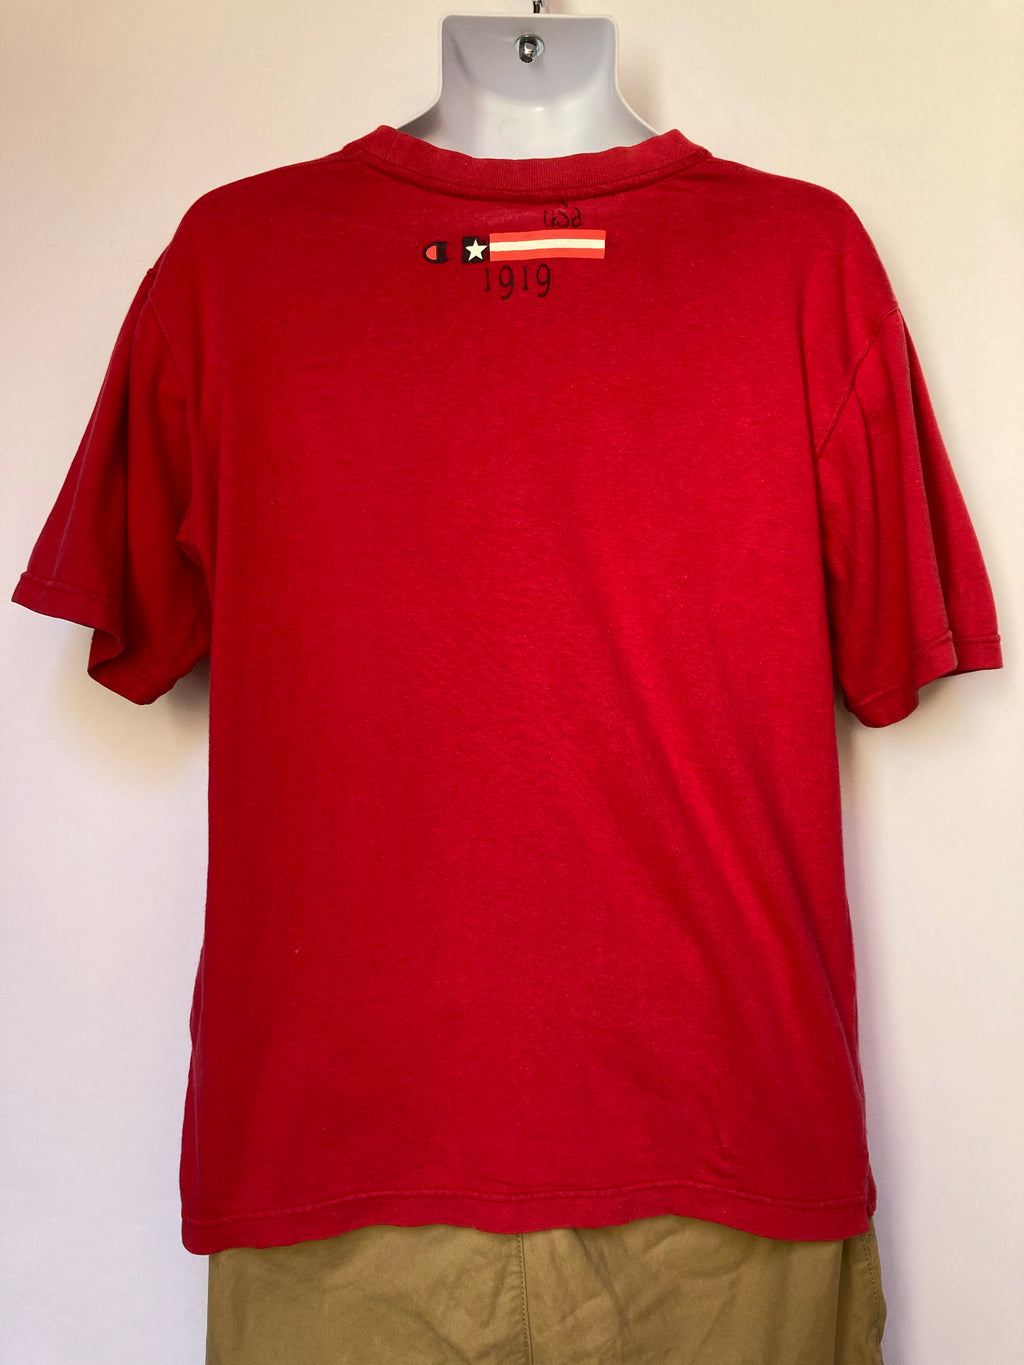 Red Champion T-shirt - AS IS - wear